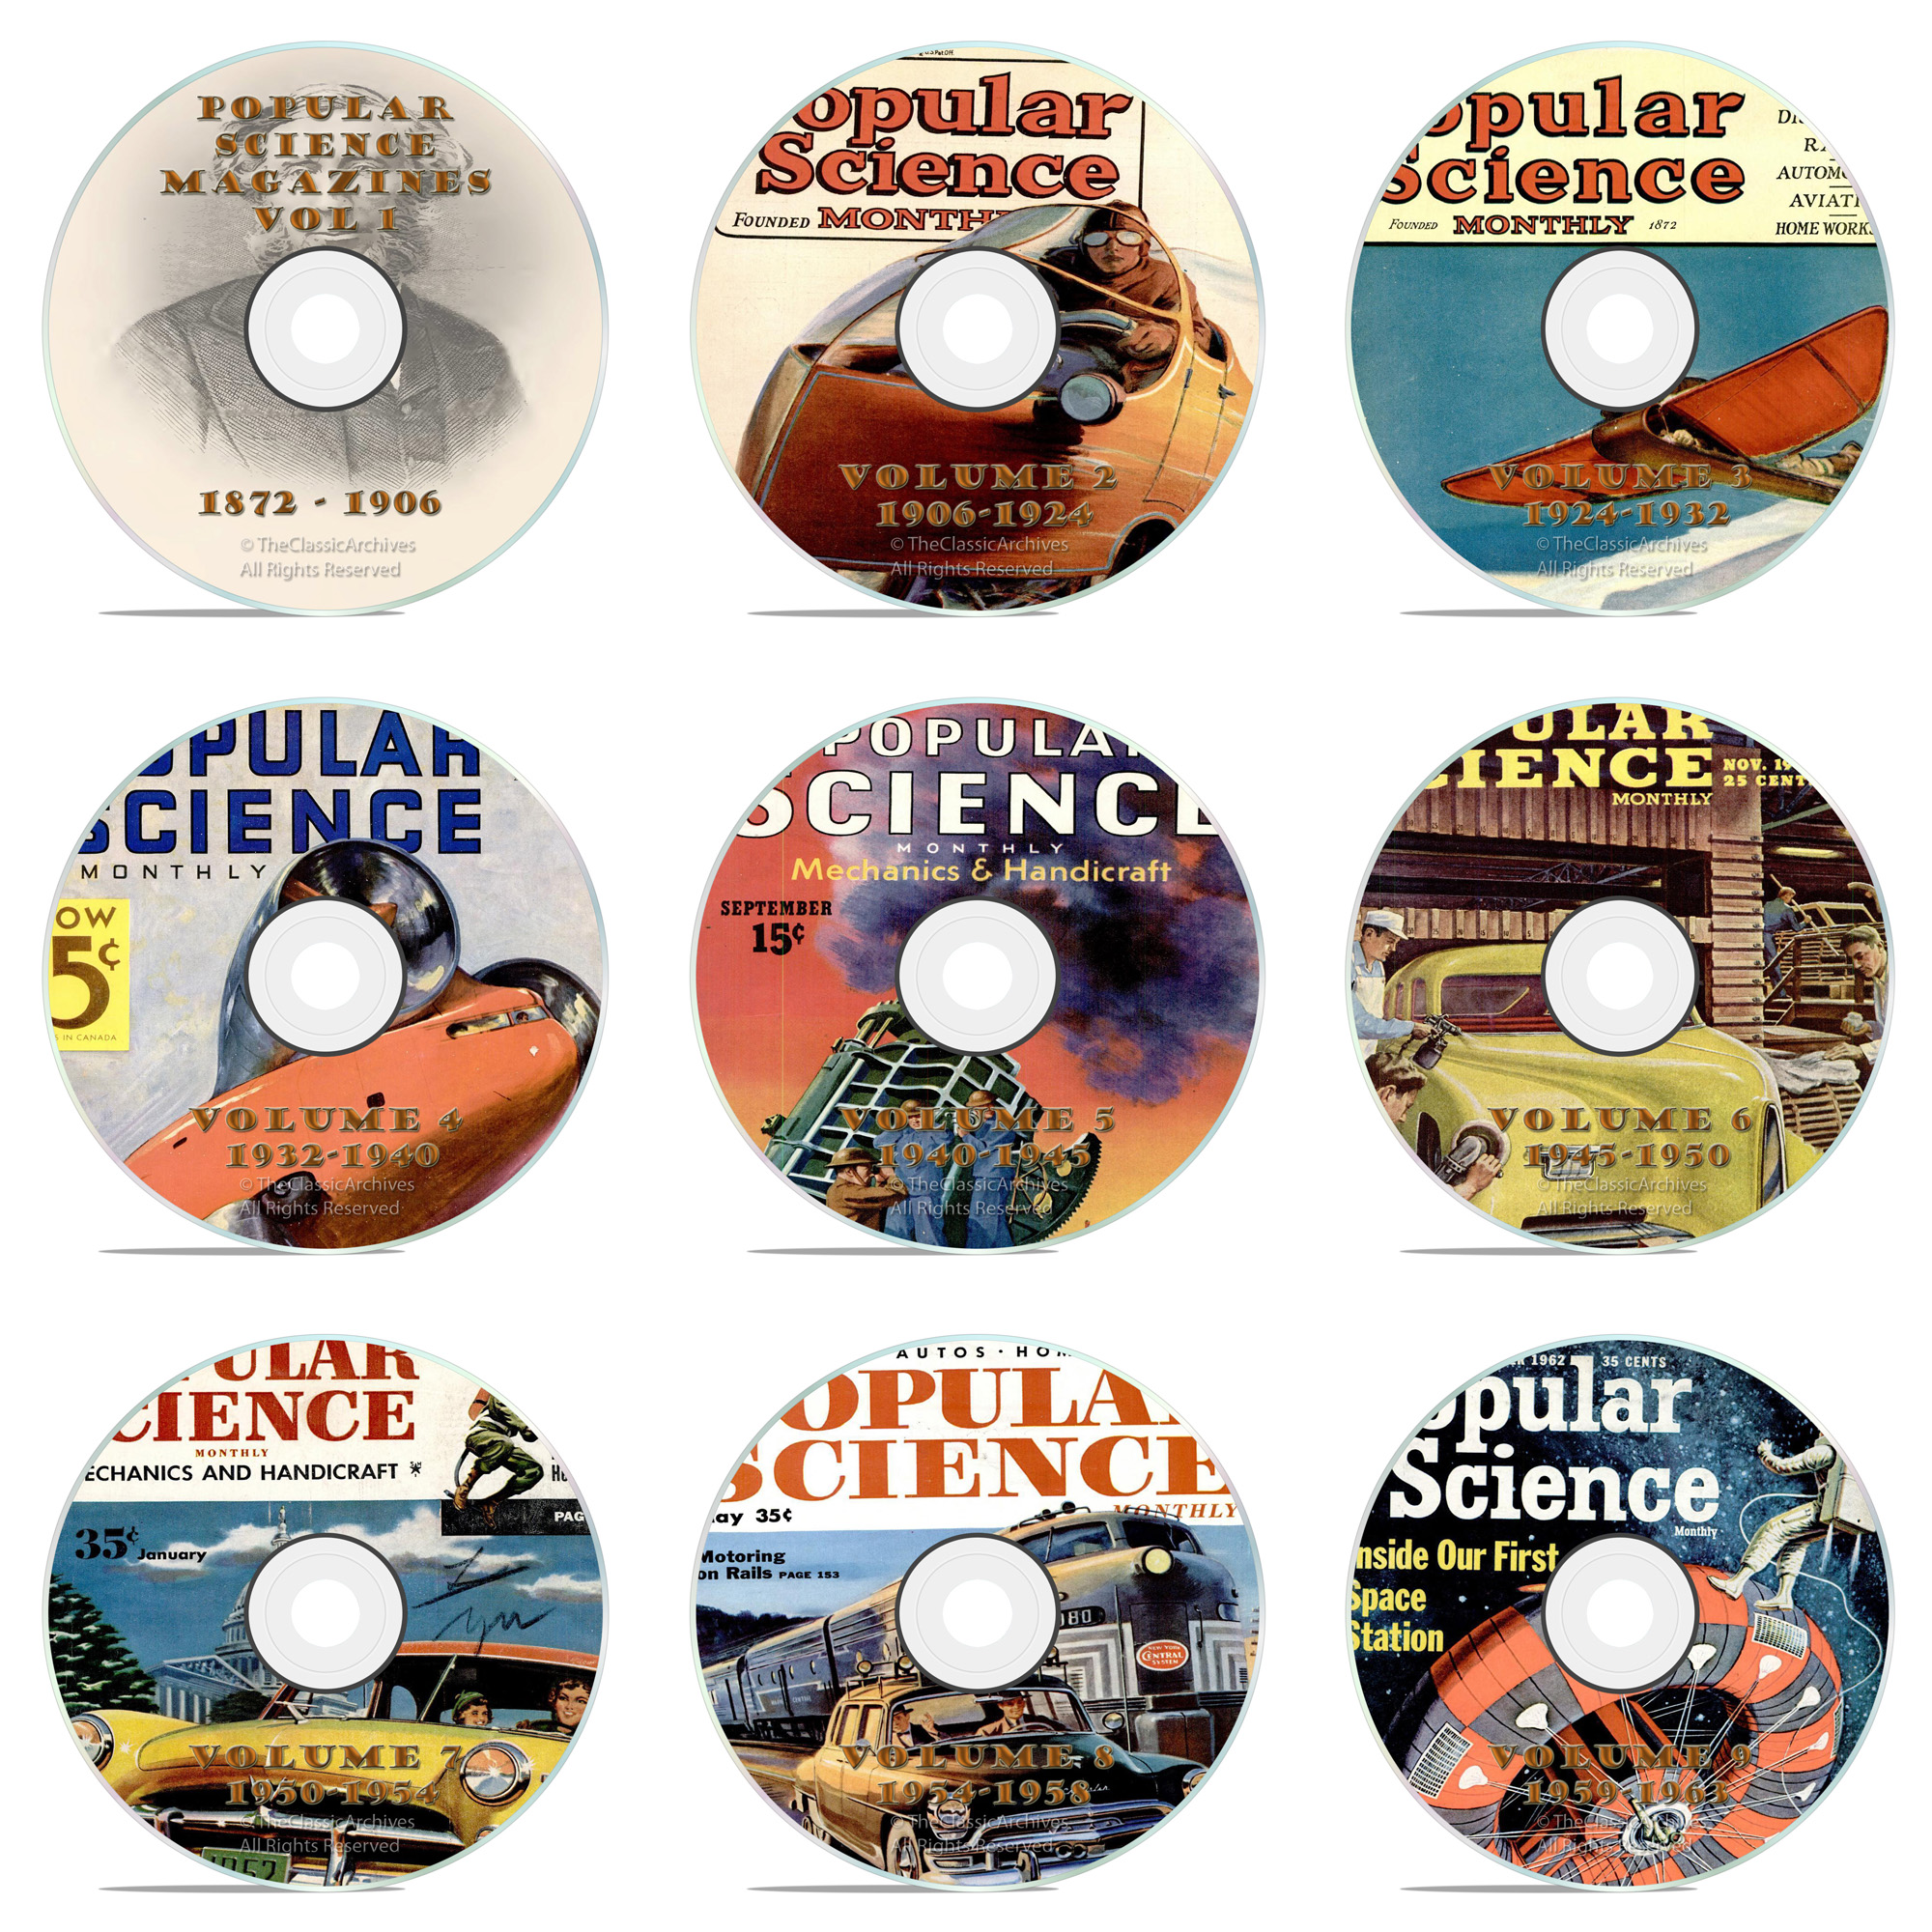 Vintage Popular Science Magazine, 9 DVD Complete Set, 1872-1963, 1086 issue